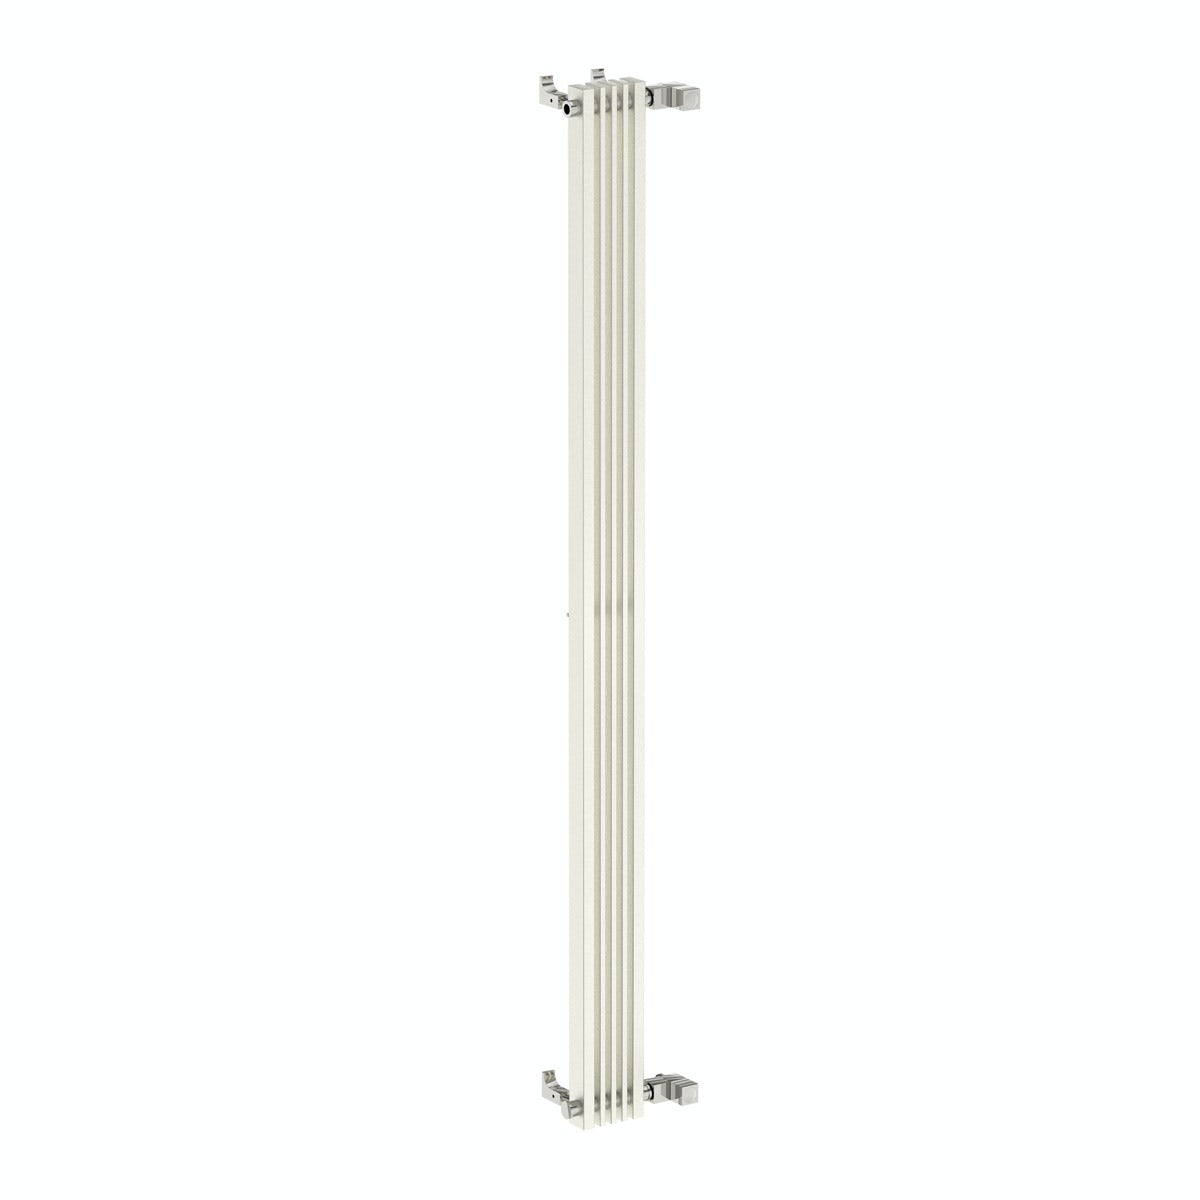 Mode Cadence vertical radiator 1600 x 140 offer pack